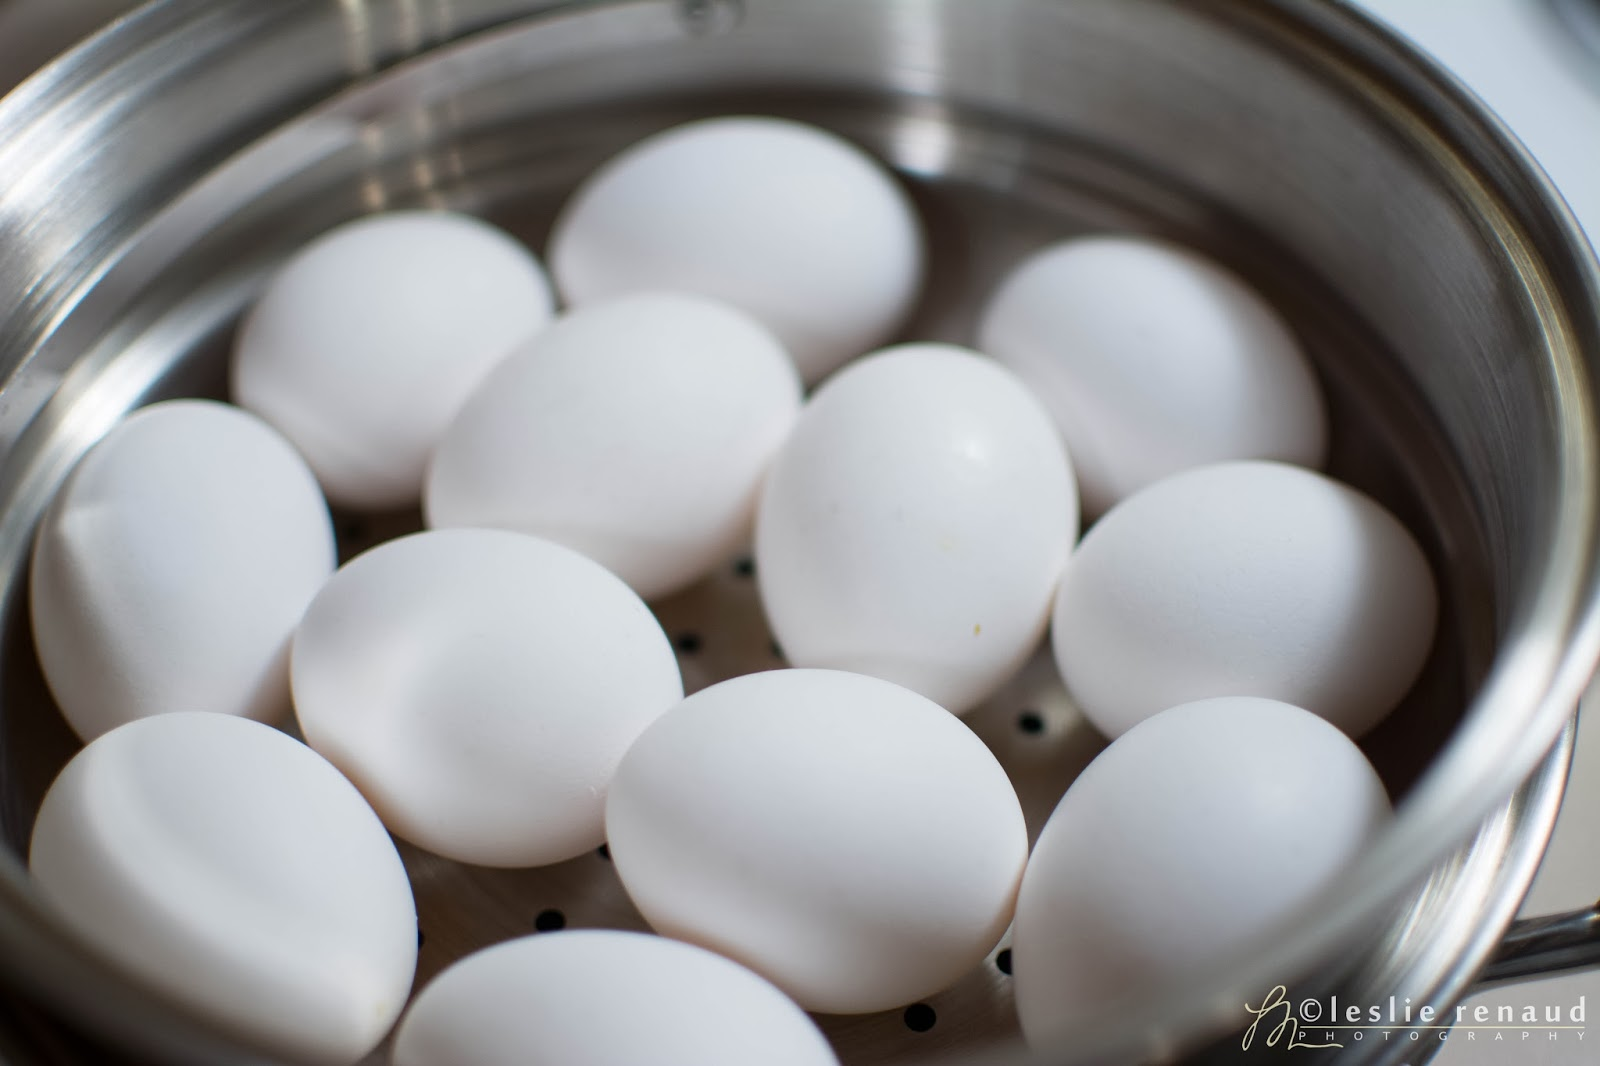 Perfect Easytopeel Hardboiled Eggs Some Say To Add Vinegar To The Water,  Others Say Salt